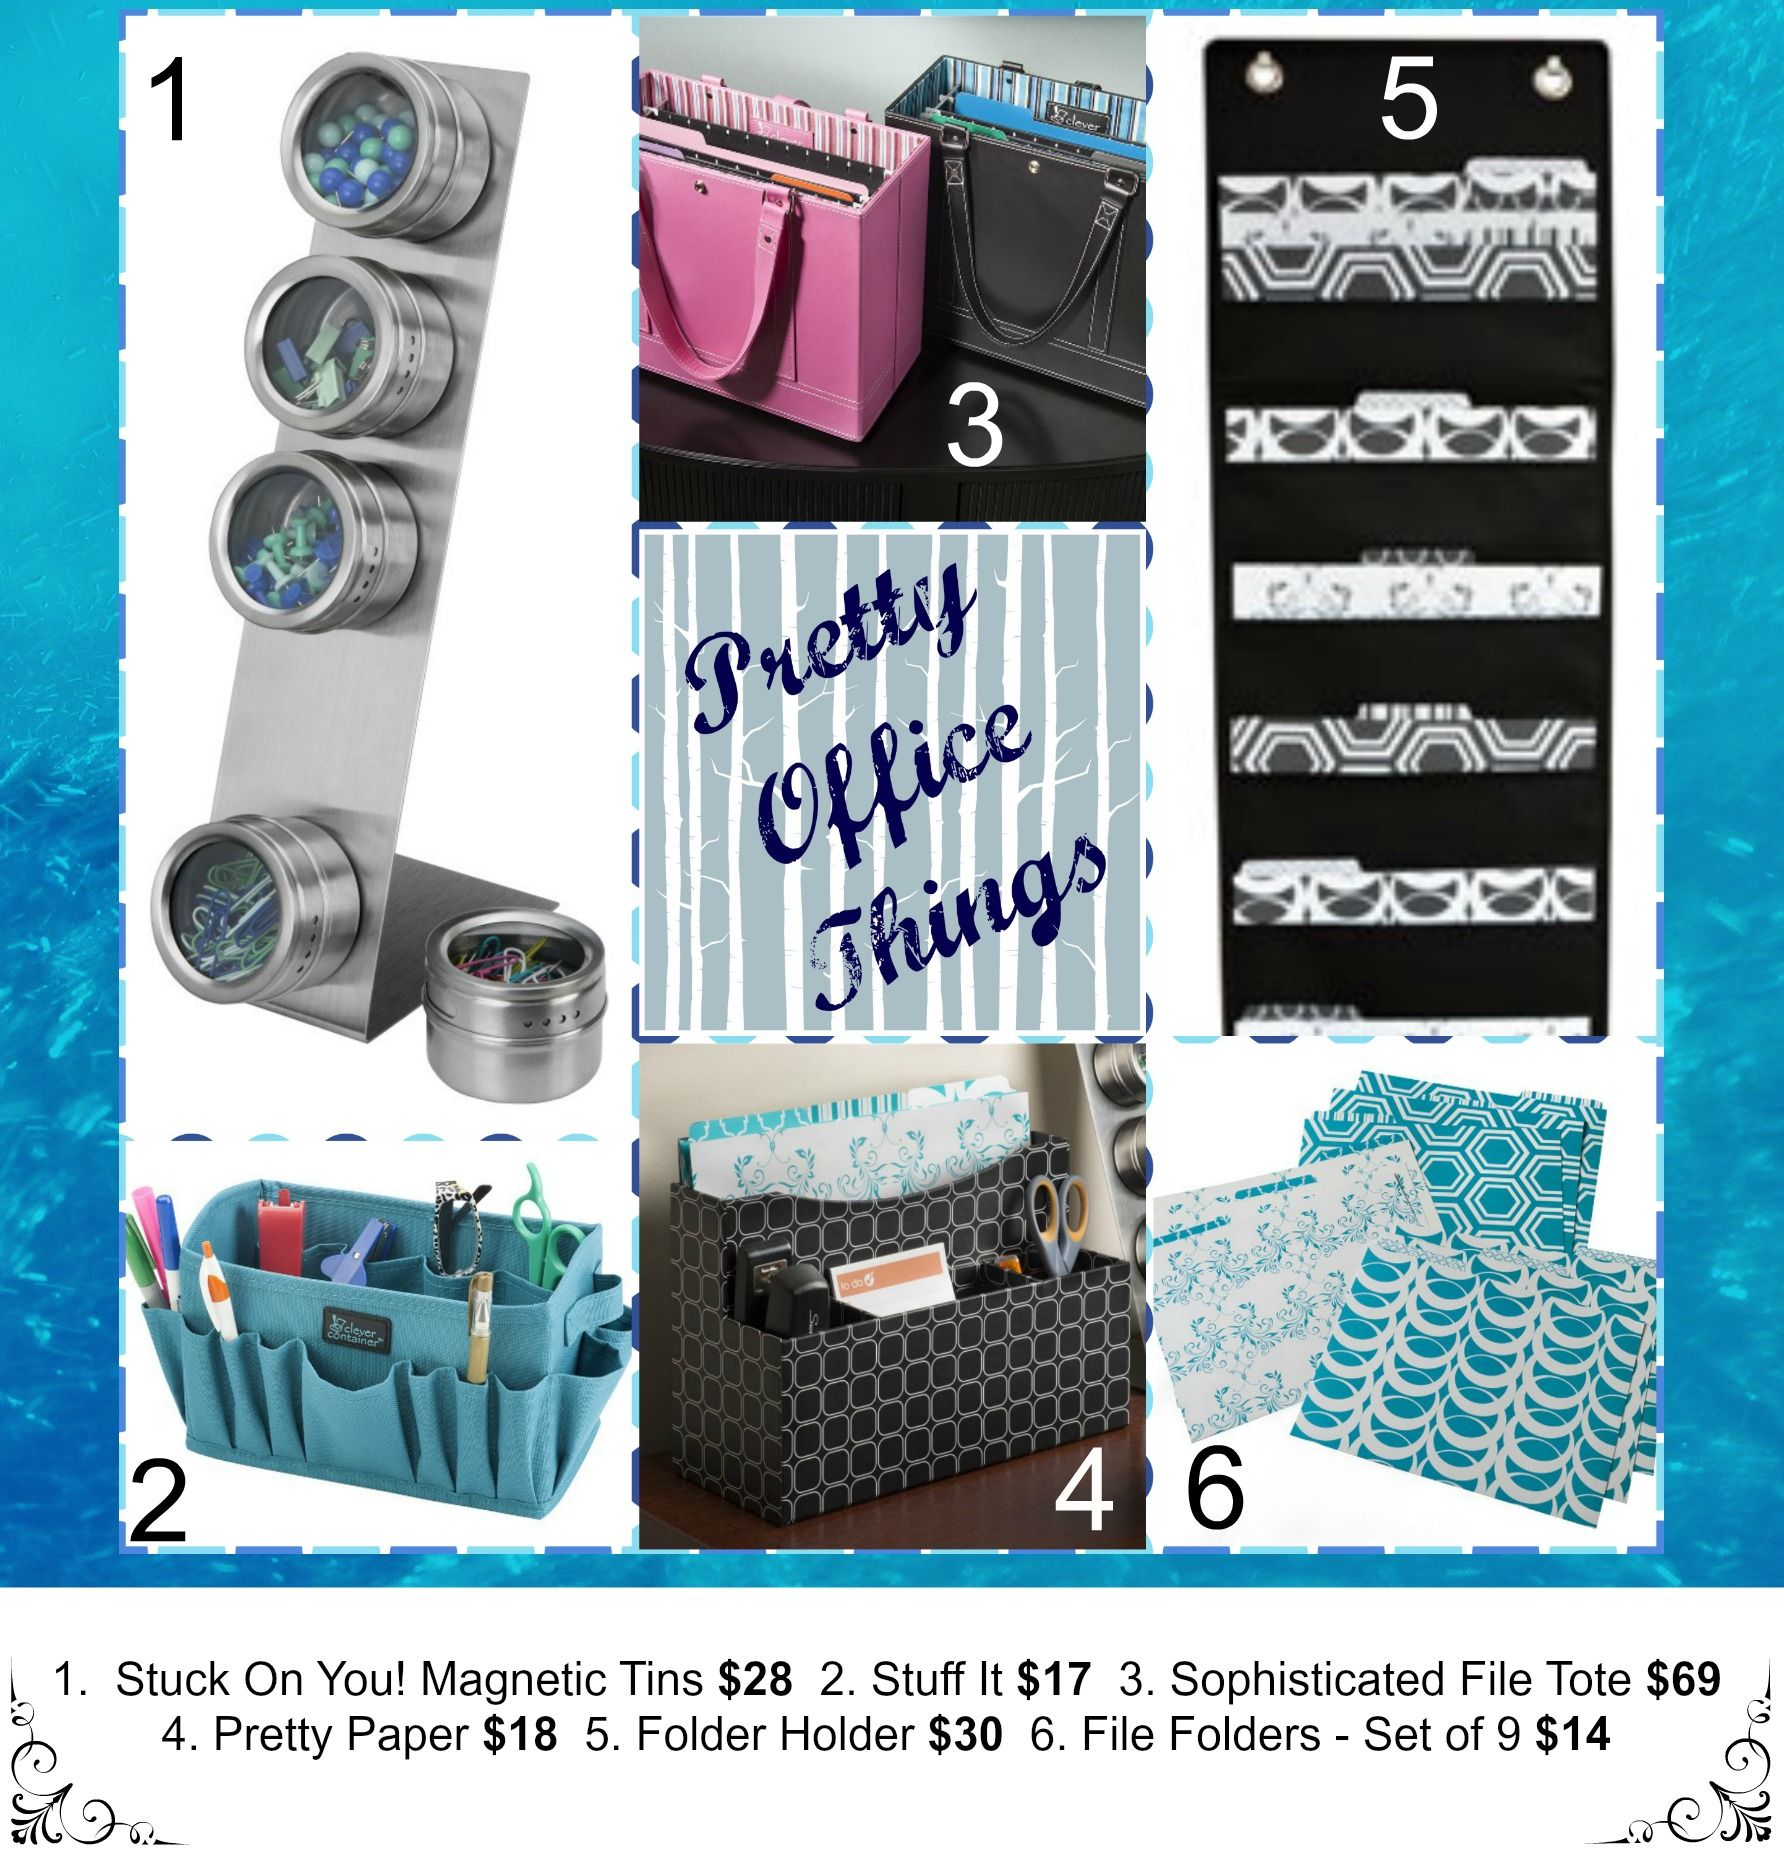 Why not decorate your office and home with pretty supplies.  My #1 pick on this pic is the black hanging file holder!